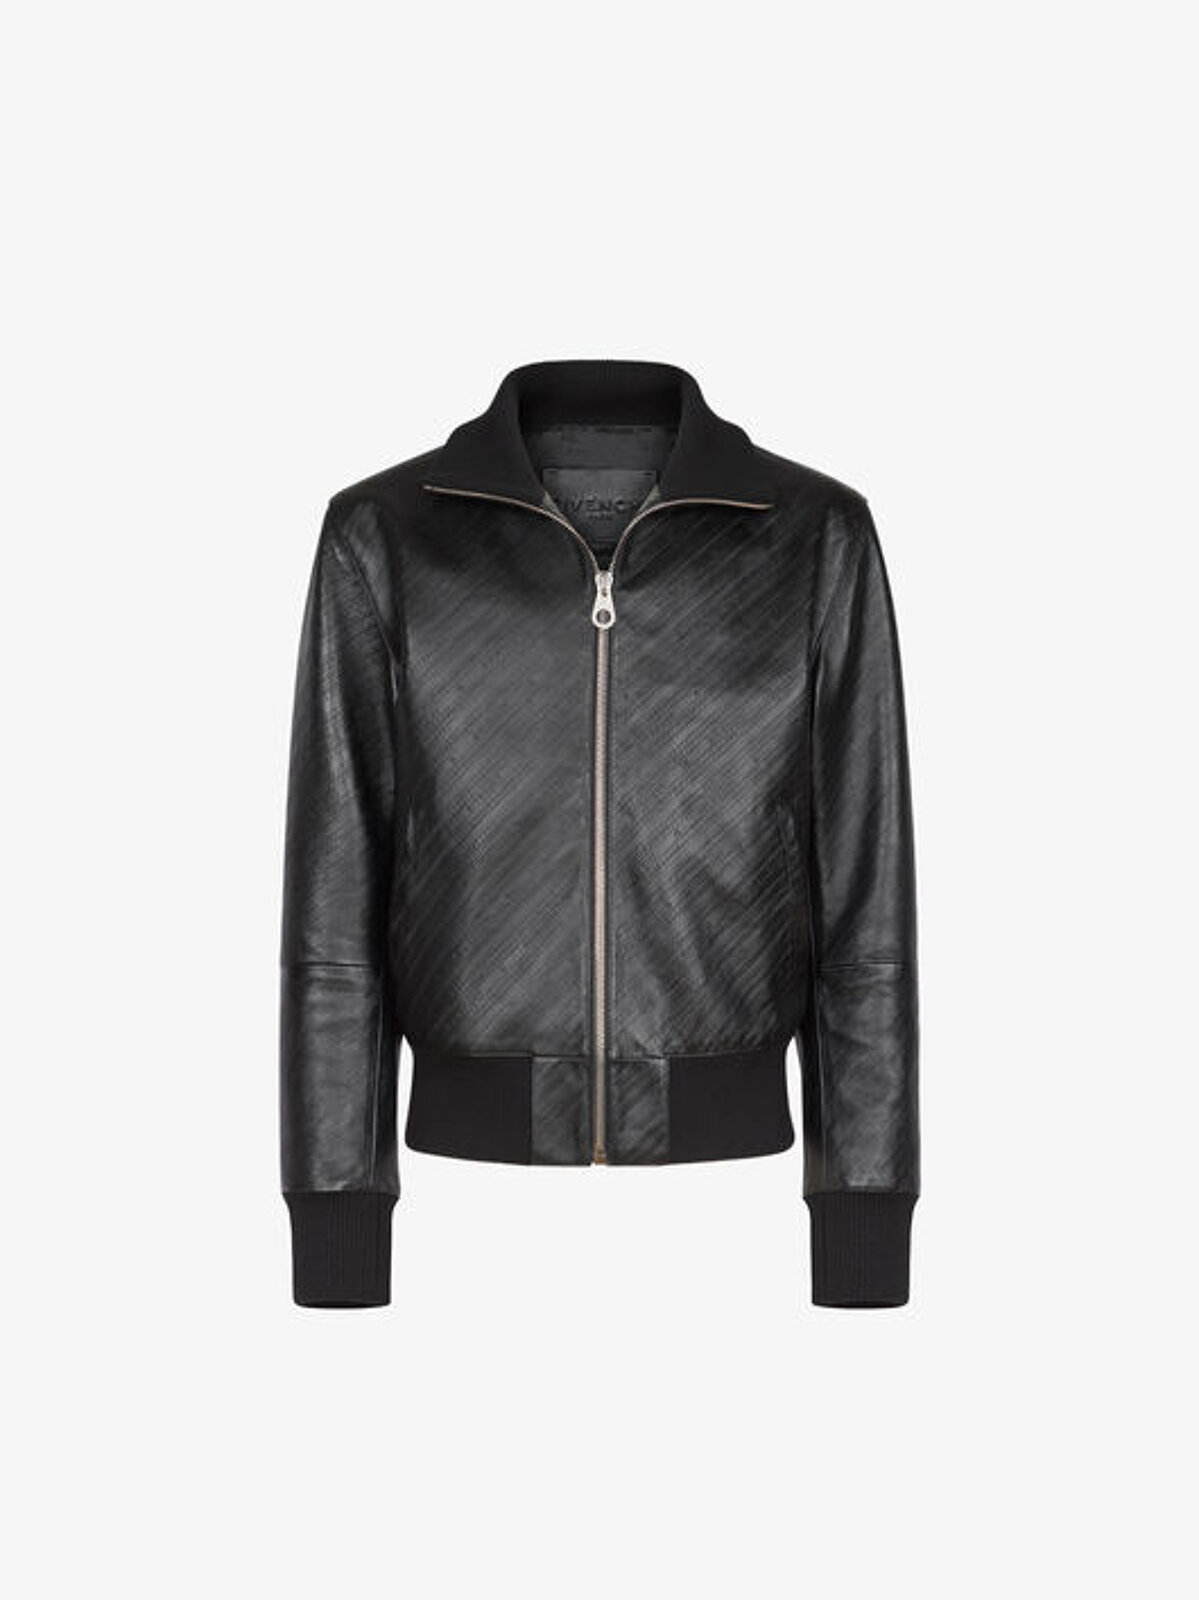 Bomber Givenchy Chaîne Di Pelle - Givenchy